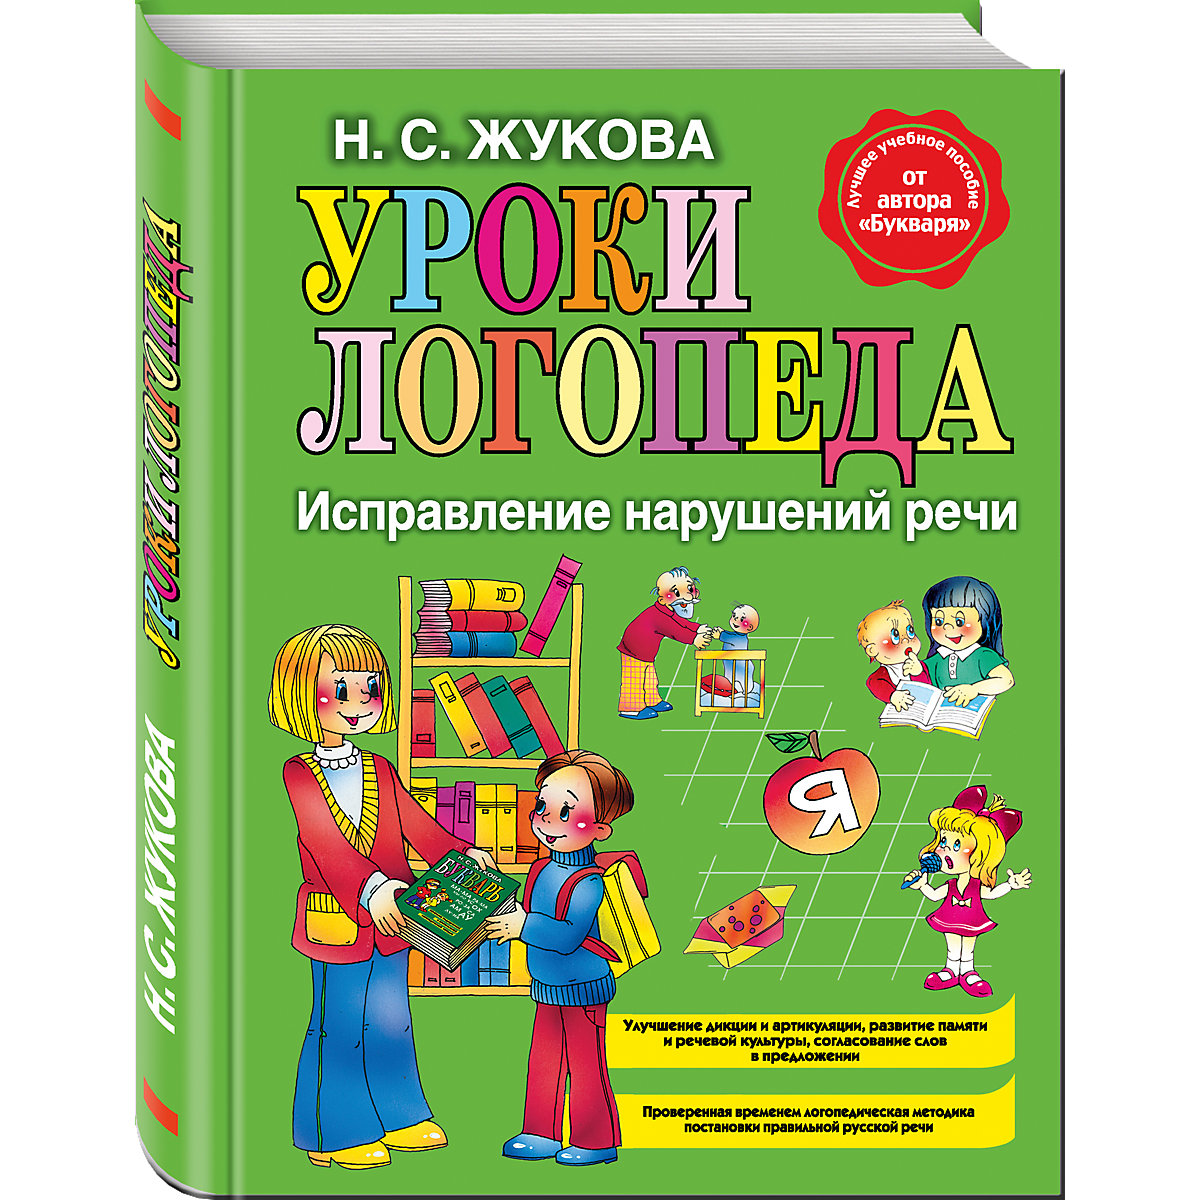 Books EKSMO 3665180 Children Education Encyclopedia Alphabet Dictionary Book For Baby MTpromo